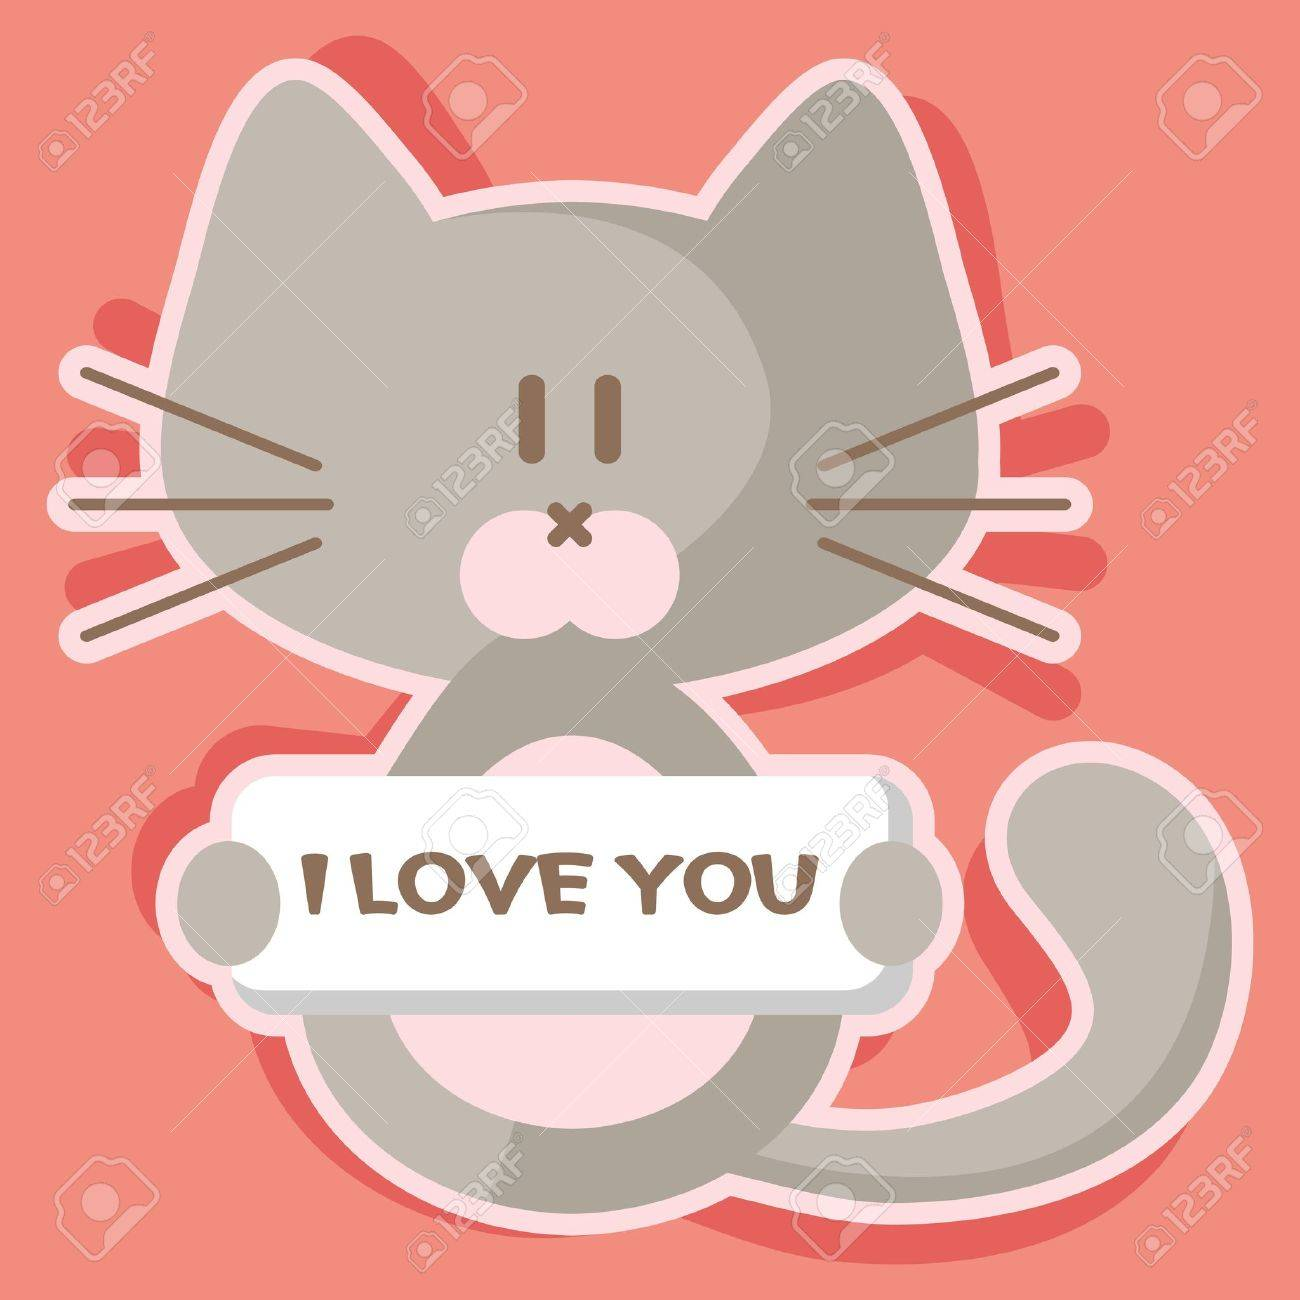 Cute Kitten Romantic Valentine Card Royalty Free Cliparts Vectors – Romantic Valentine Card Images